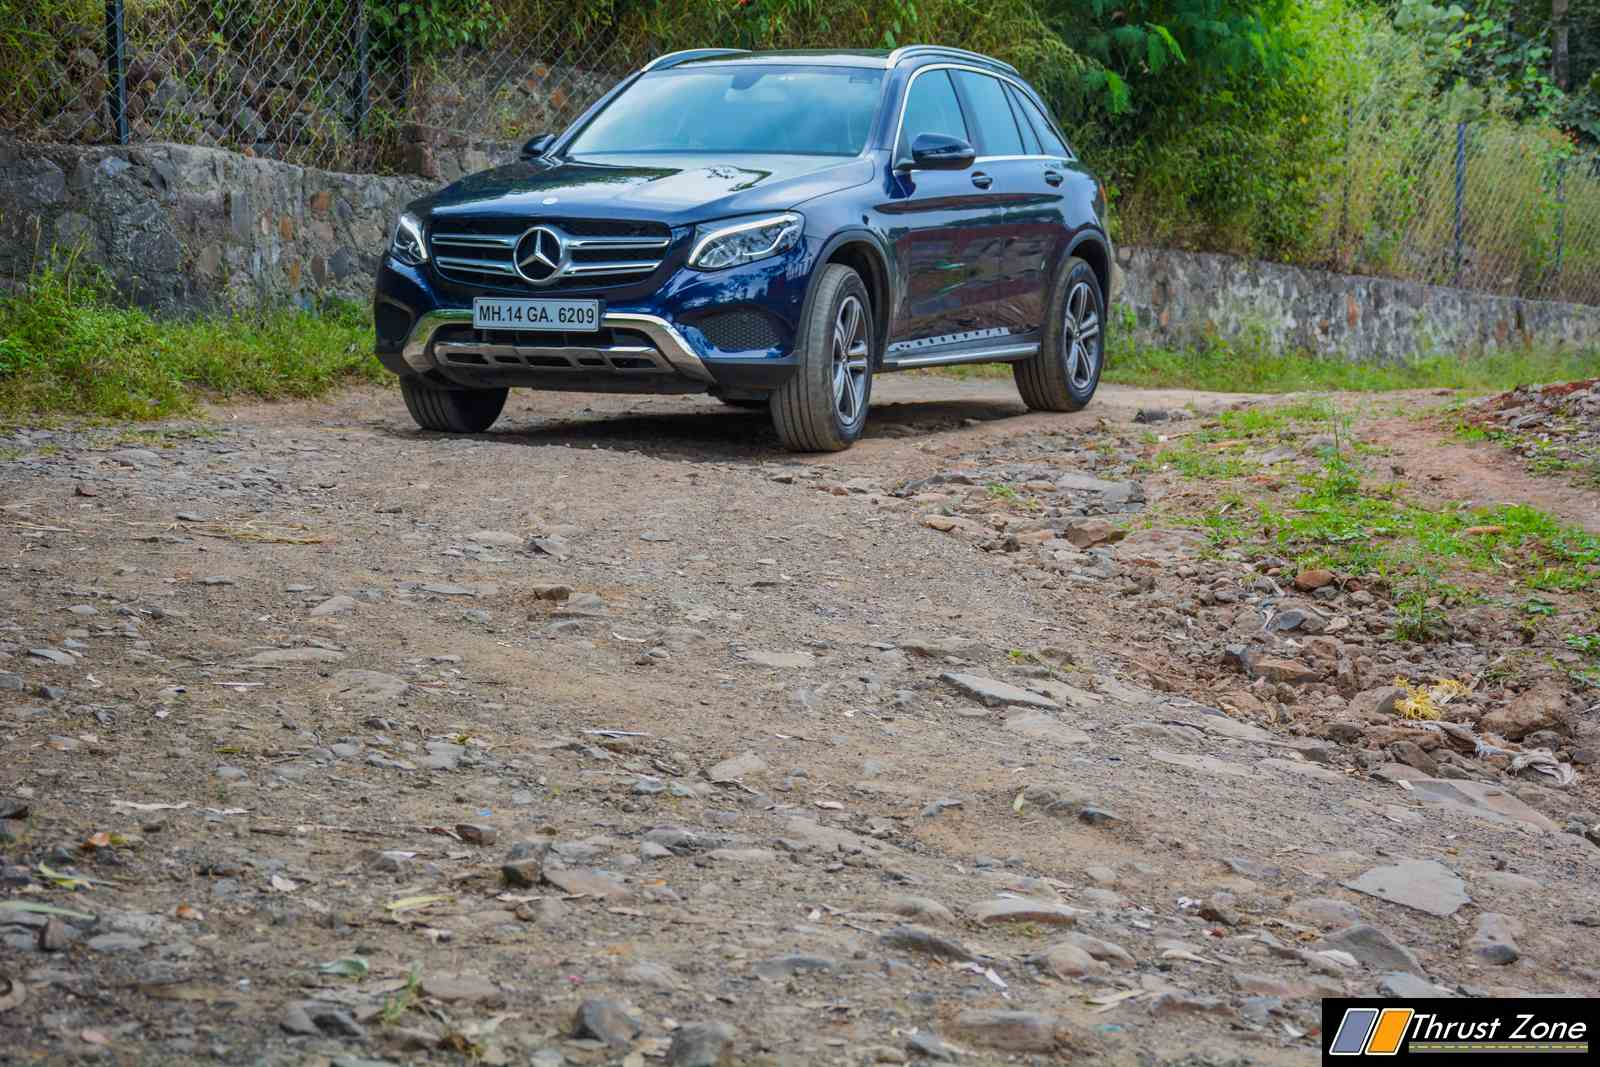 https://www.thrustzone.com/wp-content/uploads/2017/11/Mercedes-GLC-300-SUV-India-Review-29.jpg